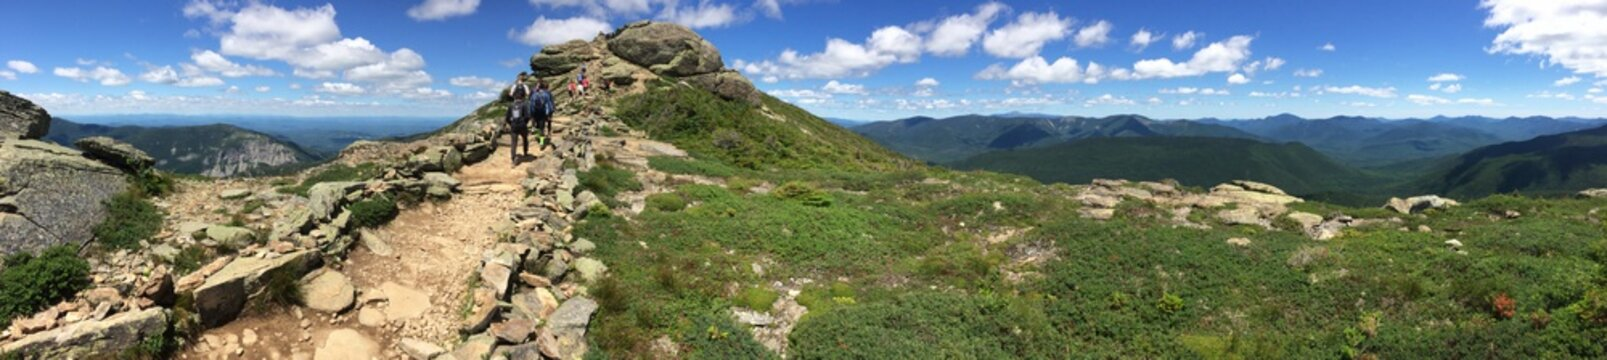 Lafayette loop, Mount Lafayette, Mount Lincoln, White mountains, New Hampshire